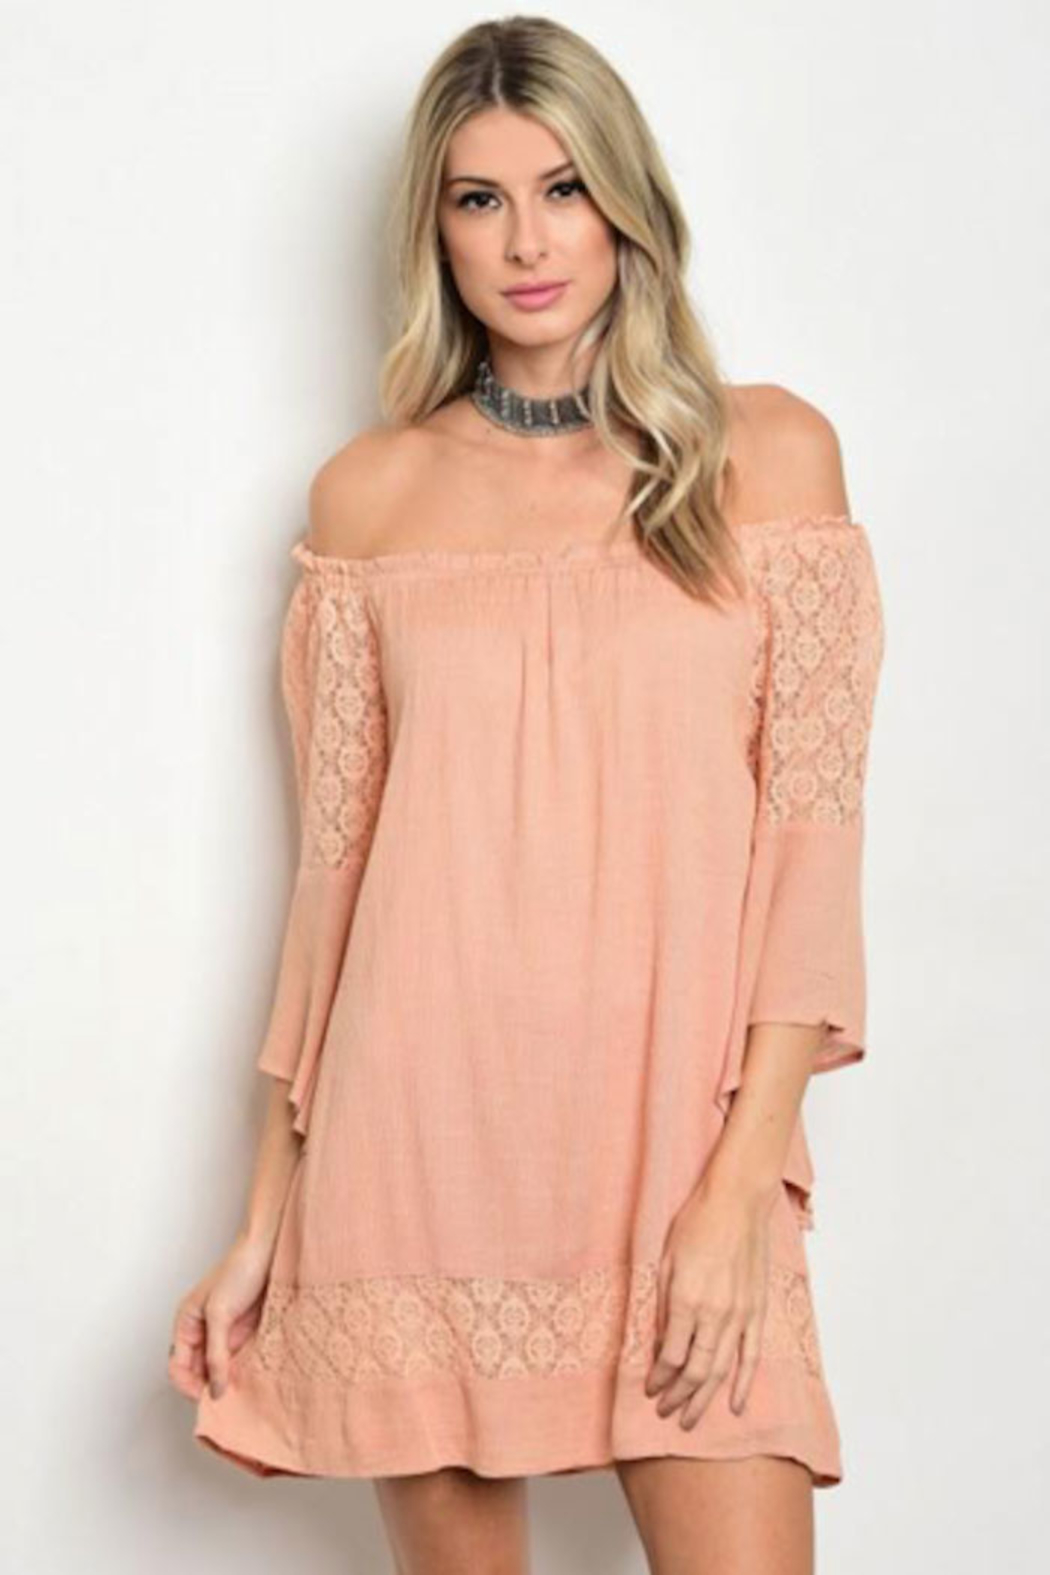 Tracie's Peach Off The Shoulder Lace Dress - Main Image